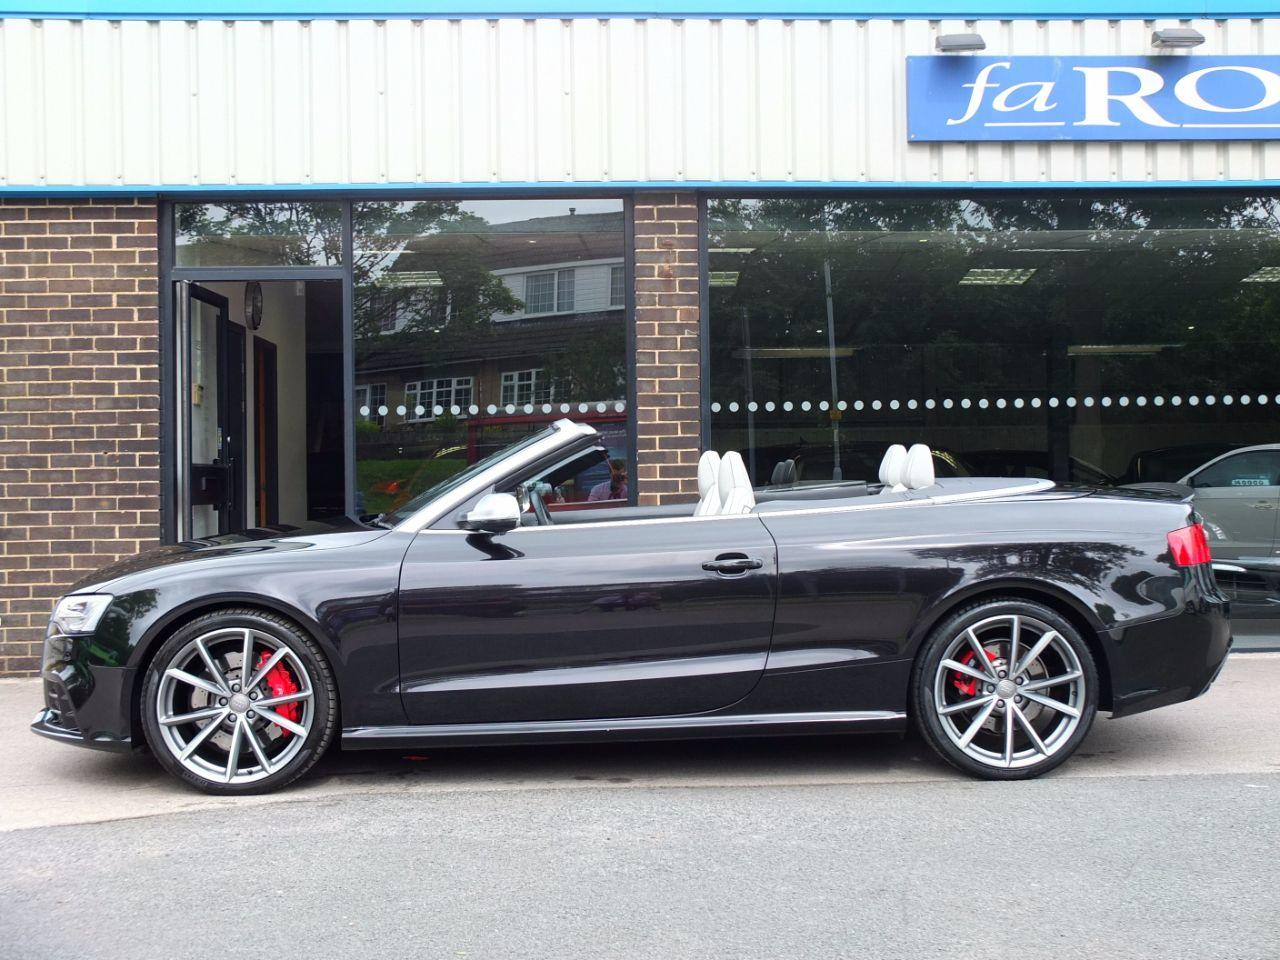 Audi RS5 Cabriolet 4.2 FSI quattro S tronic Convertible Petrol Panther Black Crystal